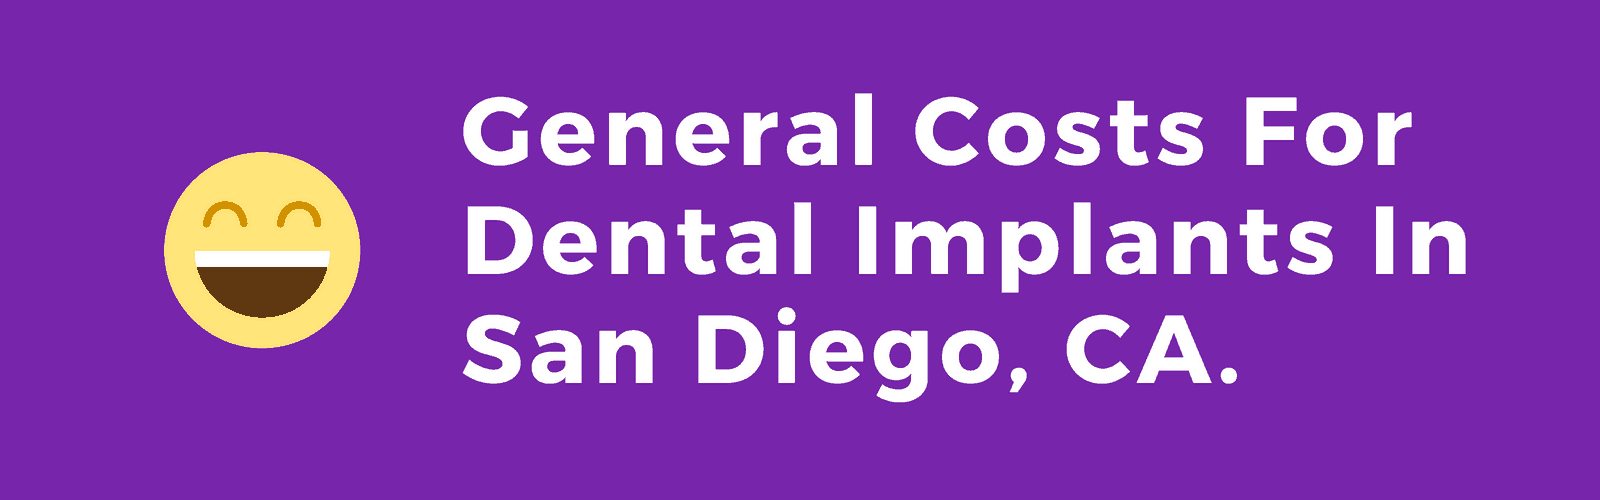 General Cost Guide For Dental Implants